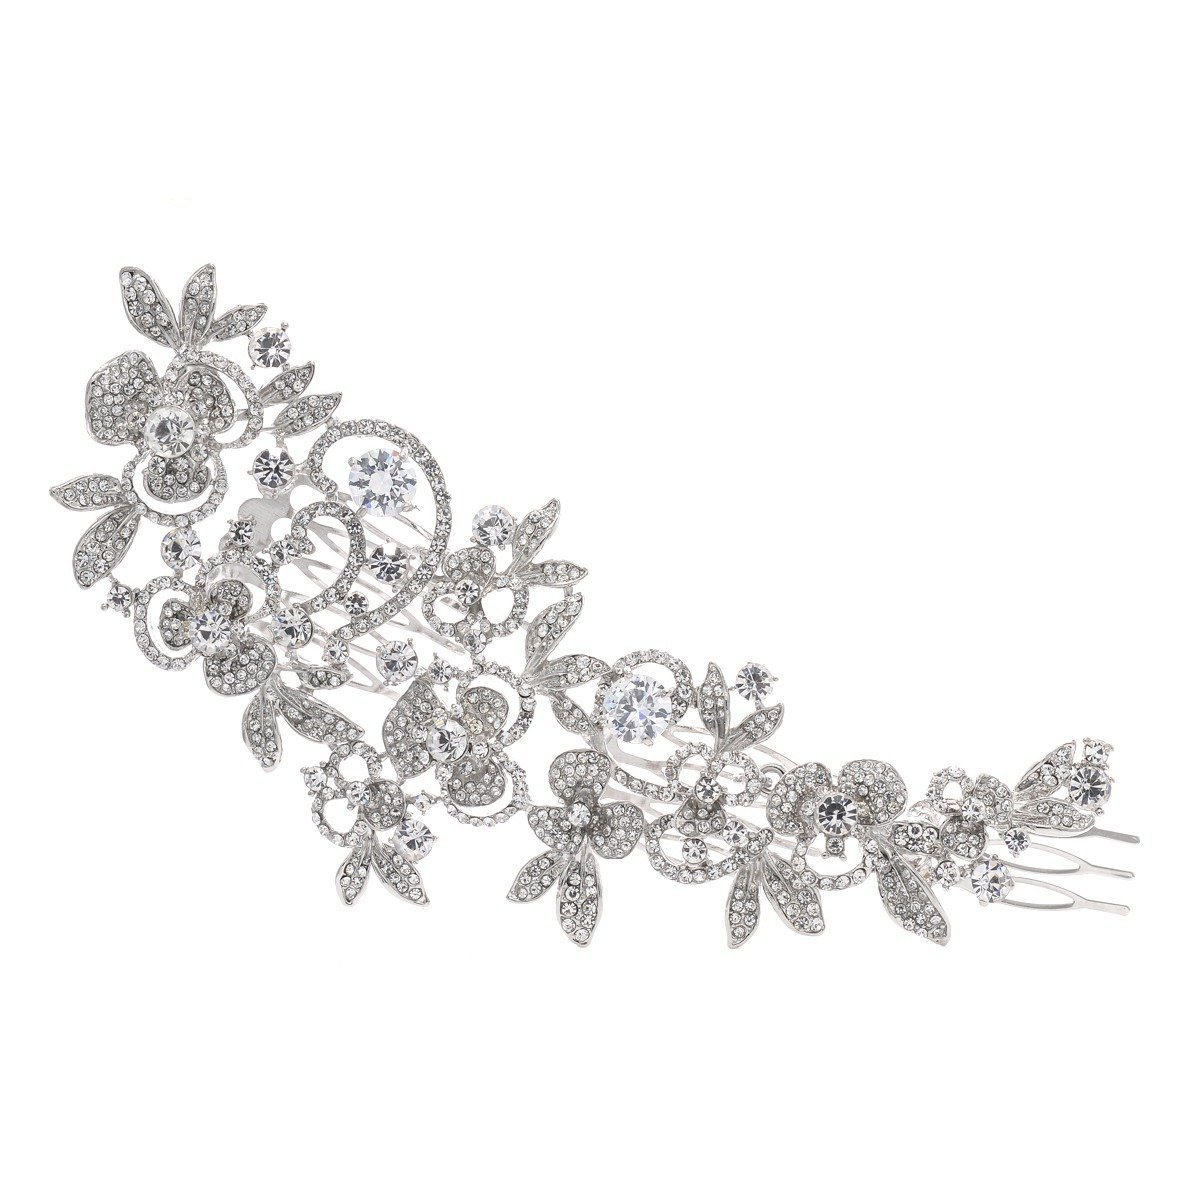 Wedding Jewelry Bridal Hair Comb Hair Accessories Hair Clips With Rhinestones Epingle Cheveux Mariage Hair Ornament